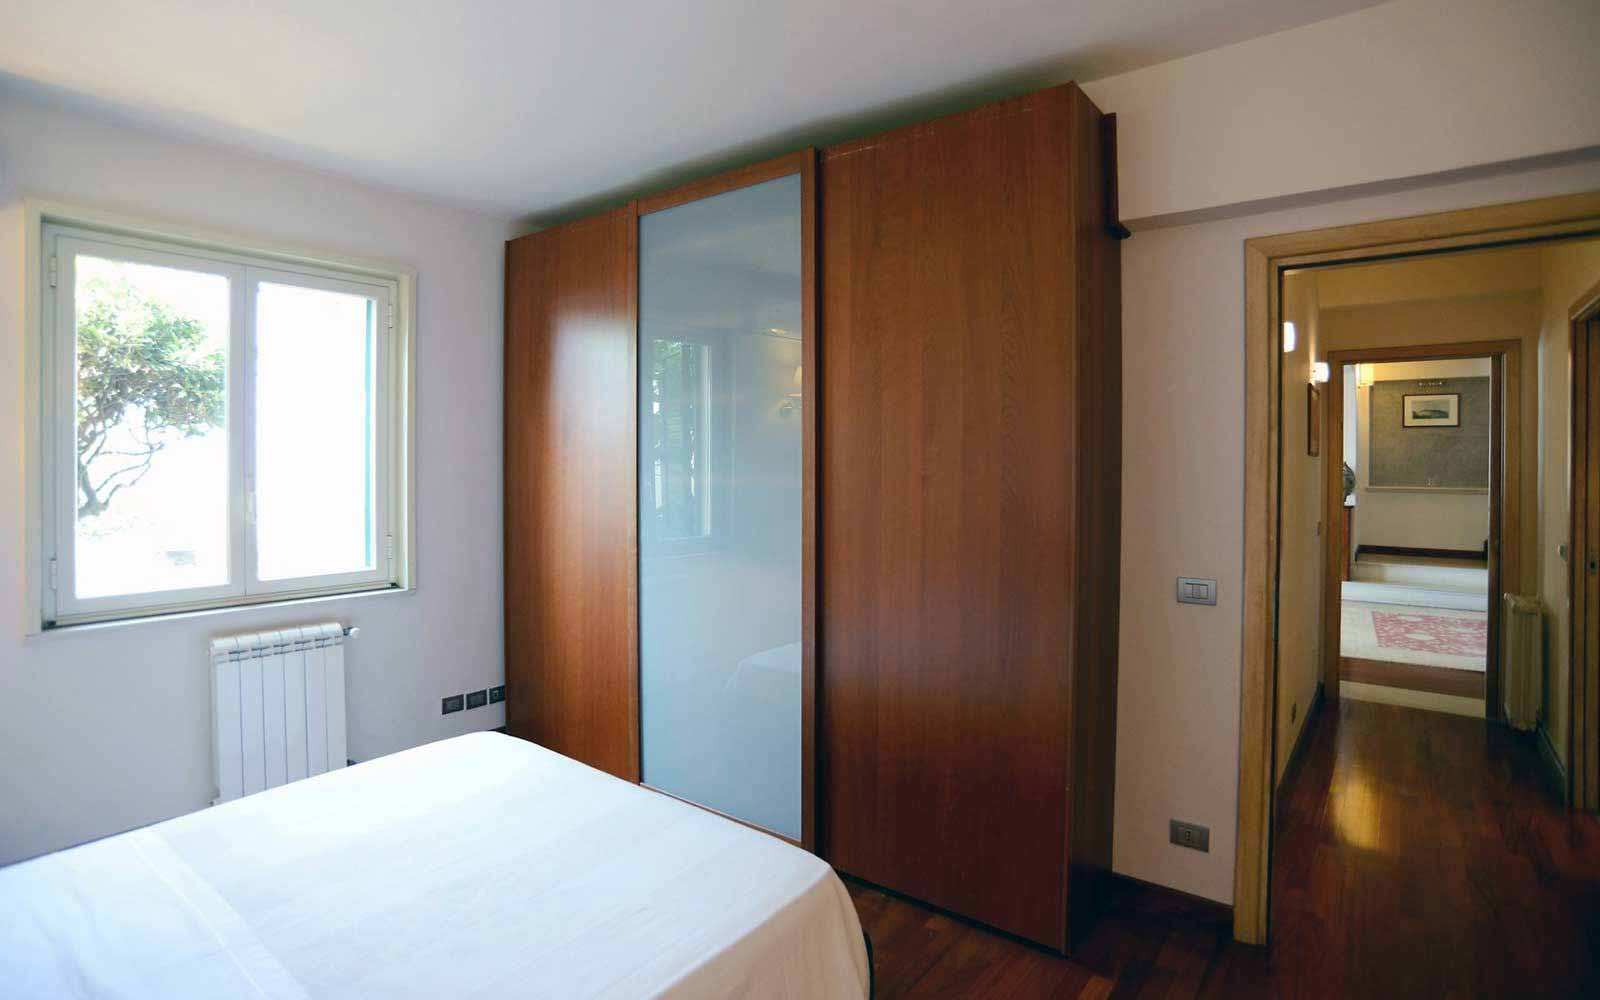 Single room at Caruso Apartment